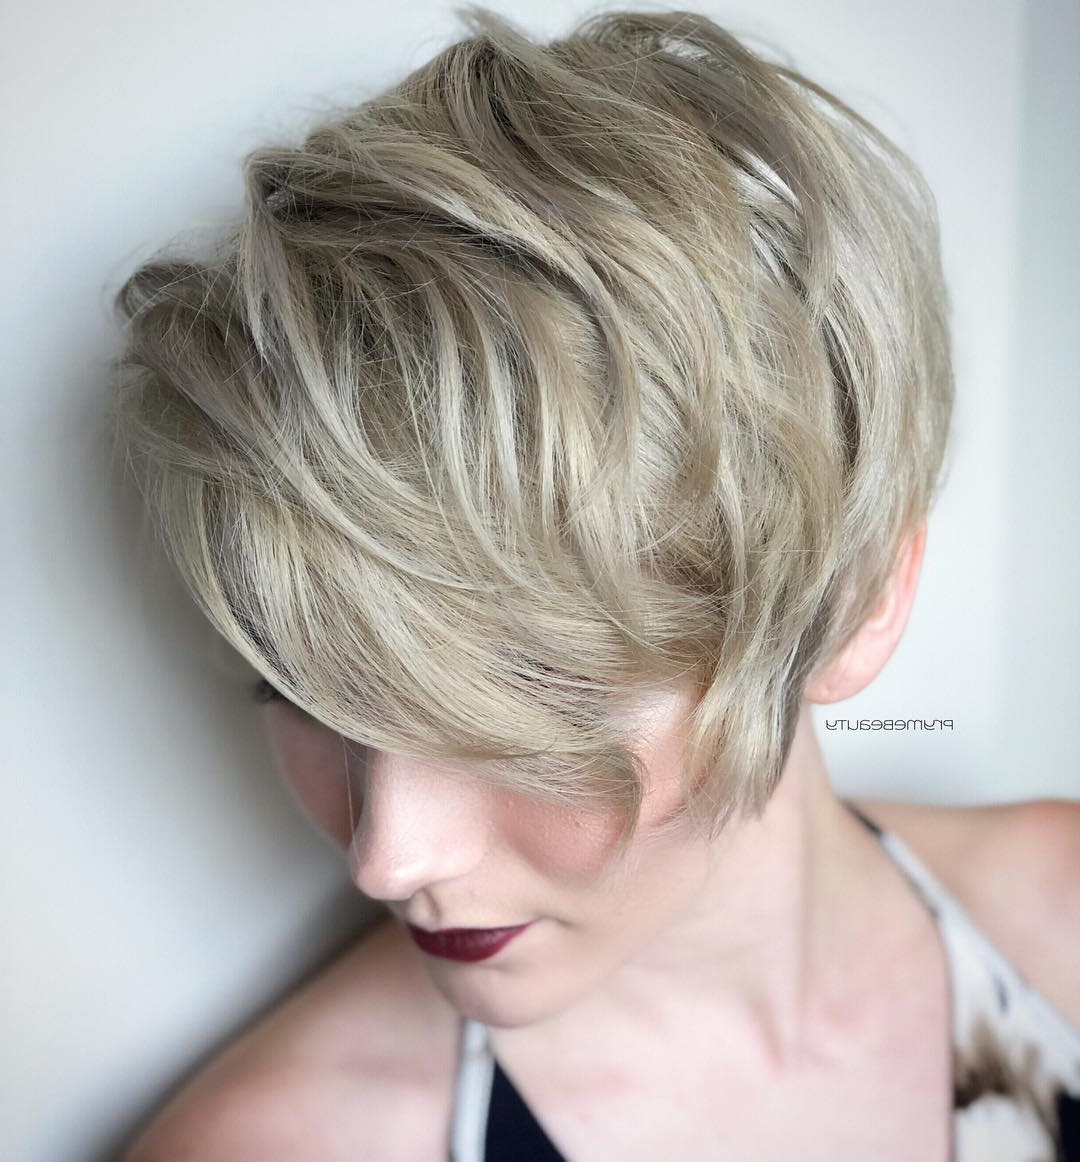 Top 10 Trendy, Low Maintenance Short Layered Hairstyles For 2018  2019 Within Low Maintenance Short Haircuts For Thick Hair (View 20 of 25)